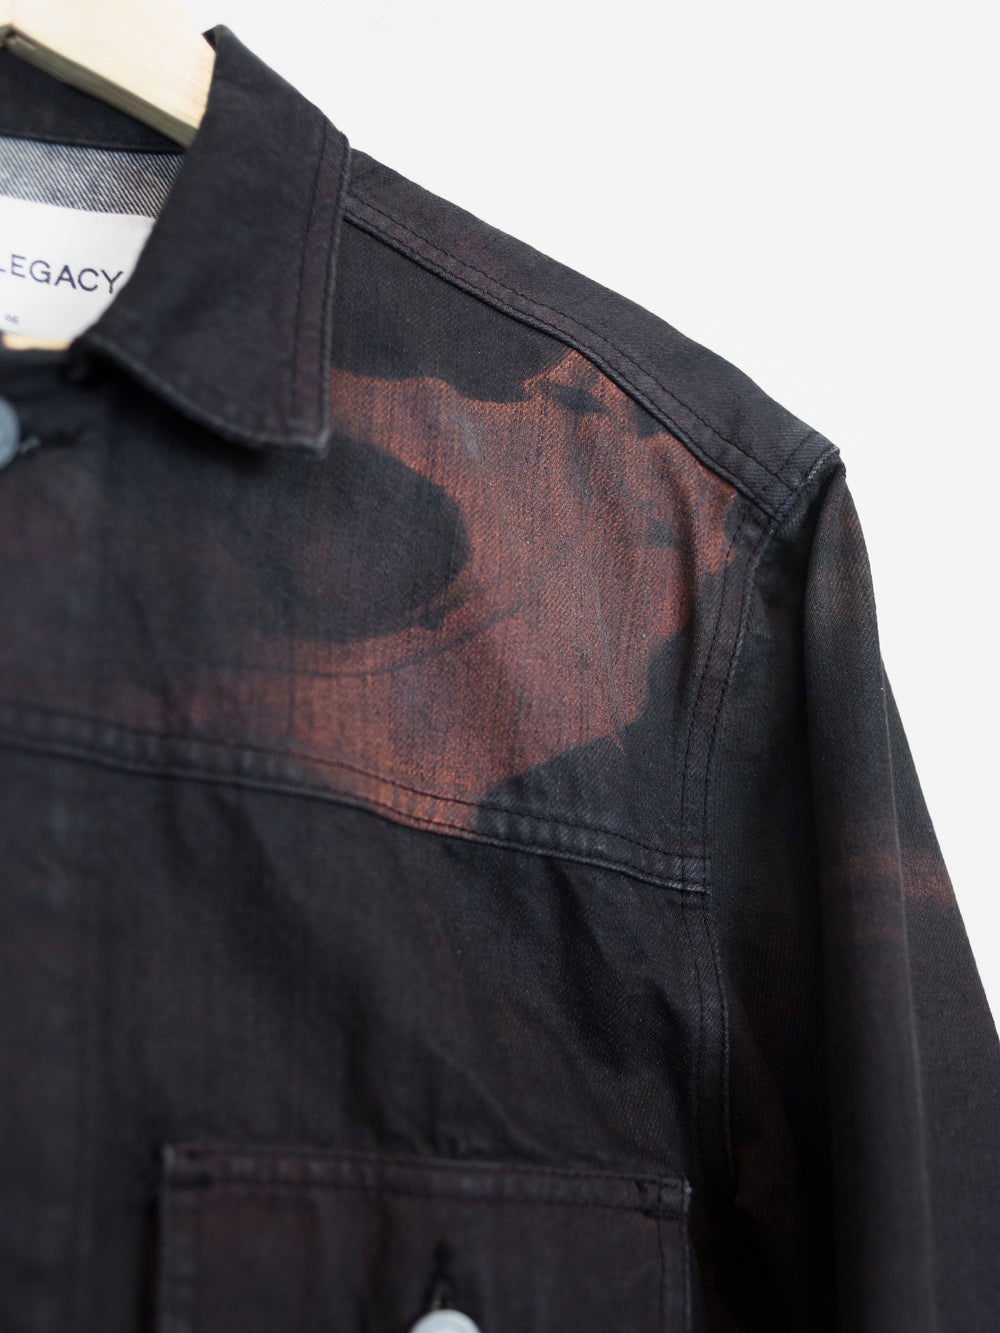 Our Legacy AW14 Black Dawn Minimalist Denim Jacket